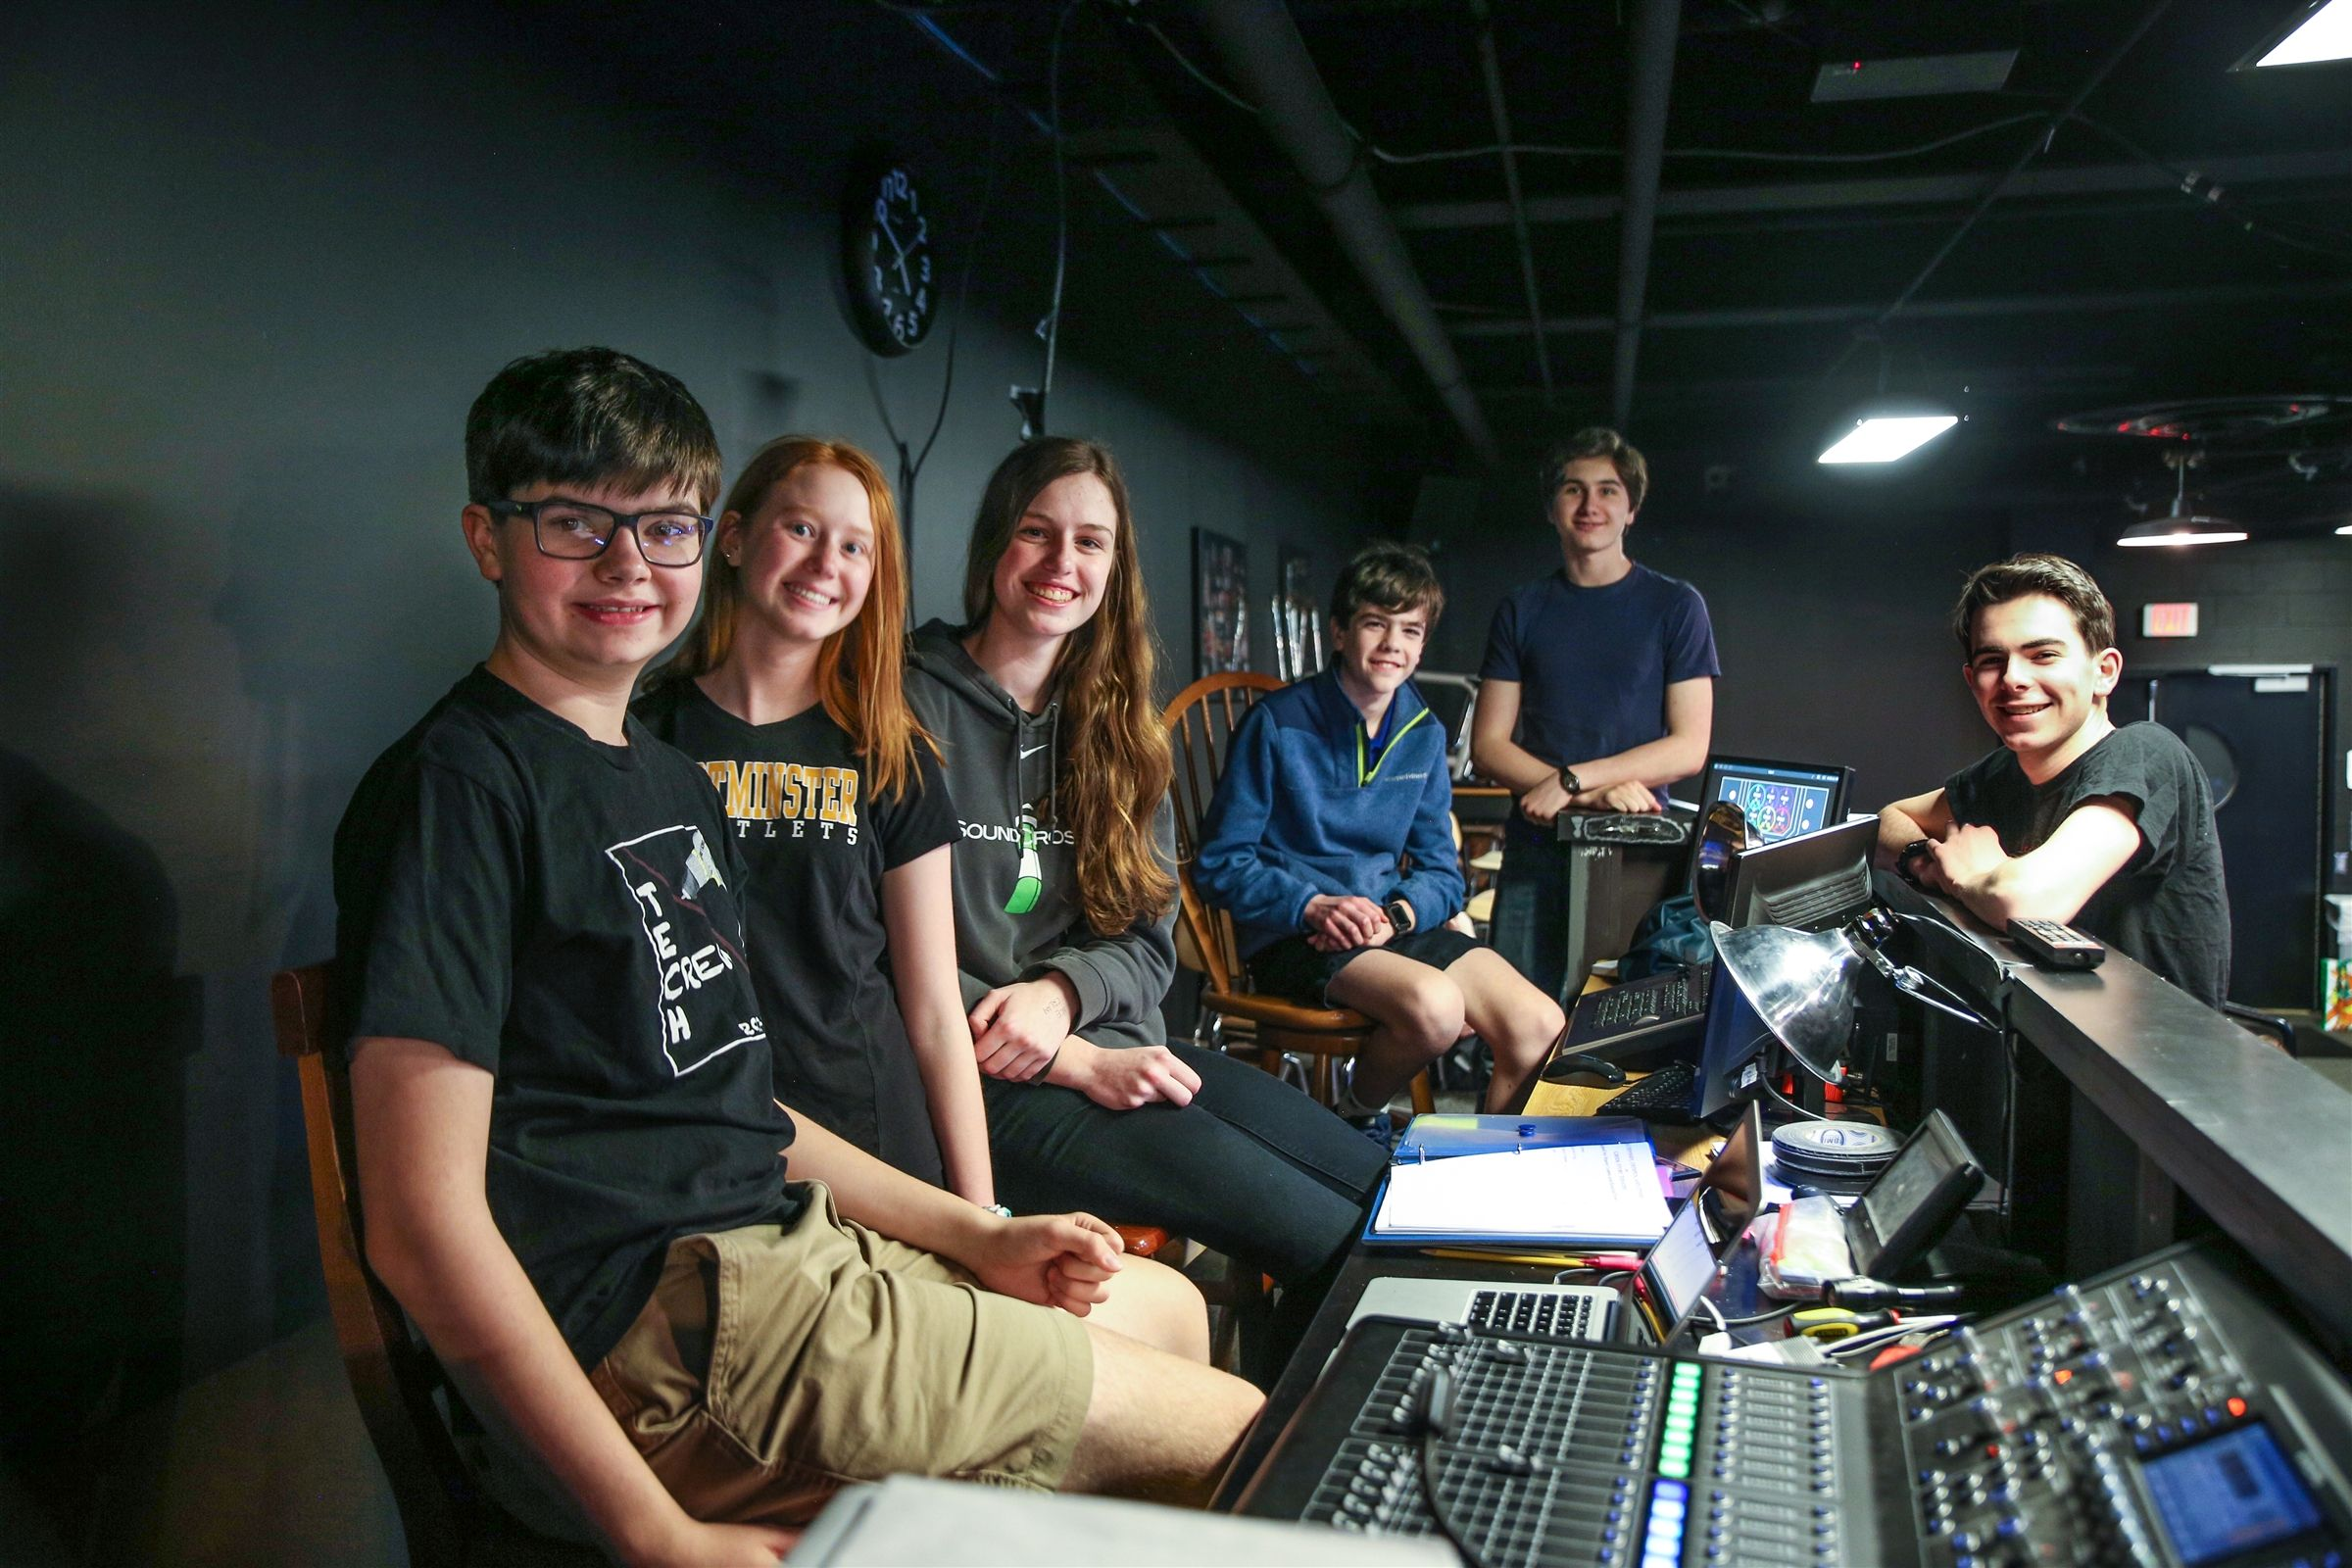 Members of the Tech Crew by the Wyckoff Family Black Box Theater lighting board